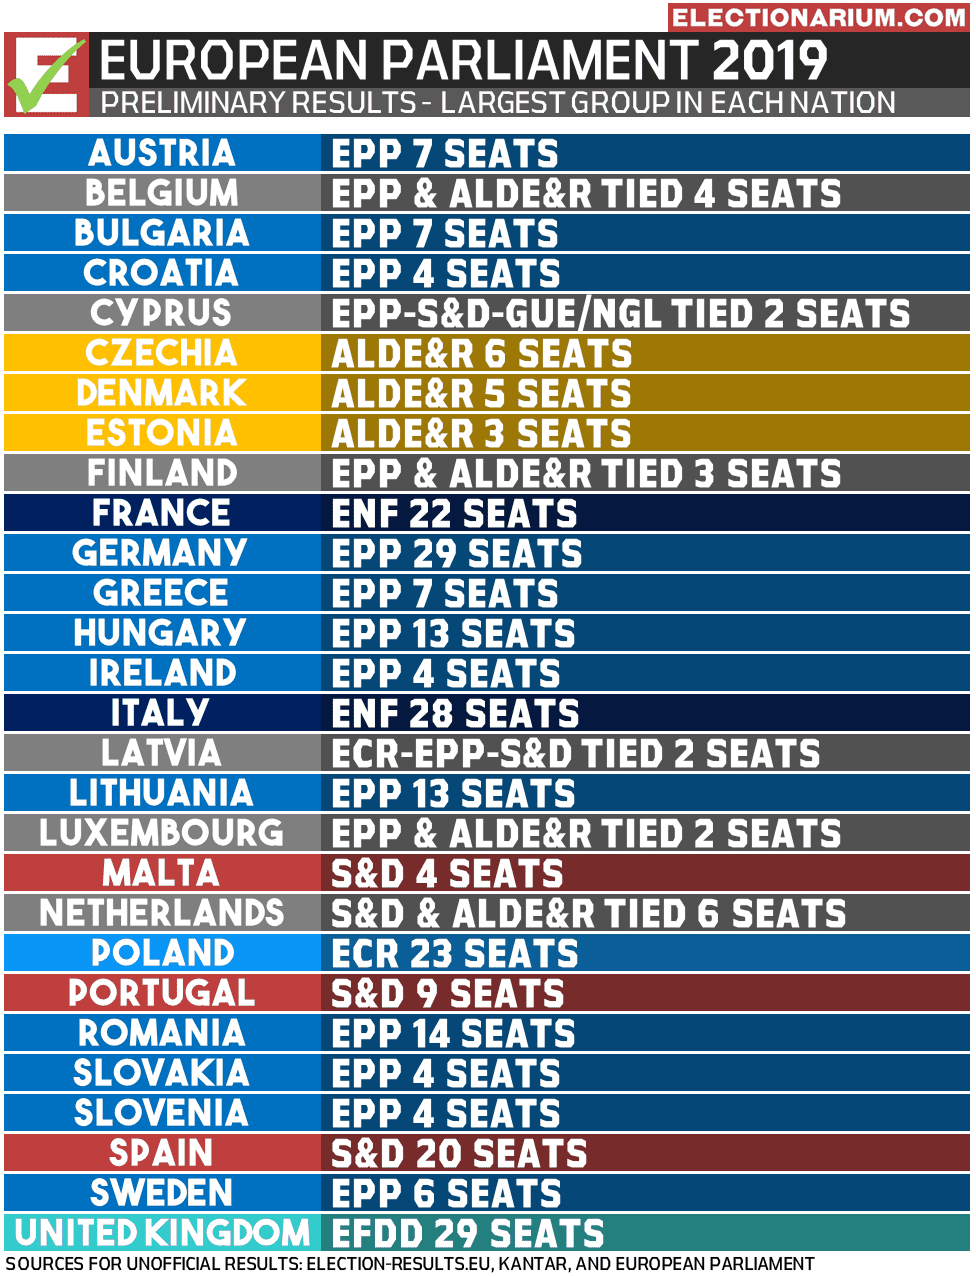 2019 European Parliament election results - most seats by country